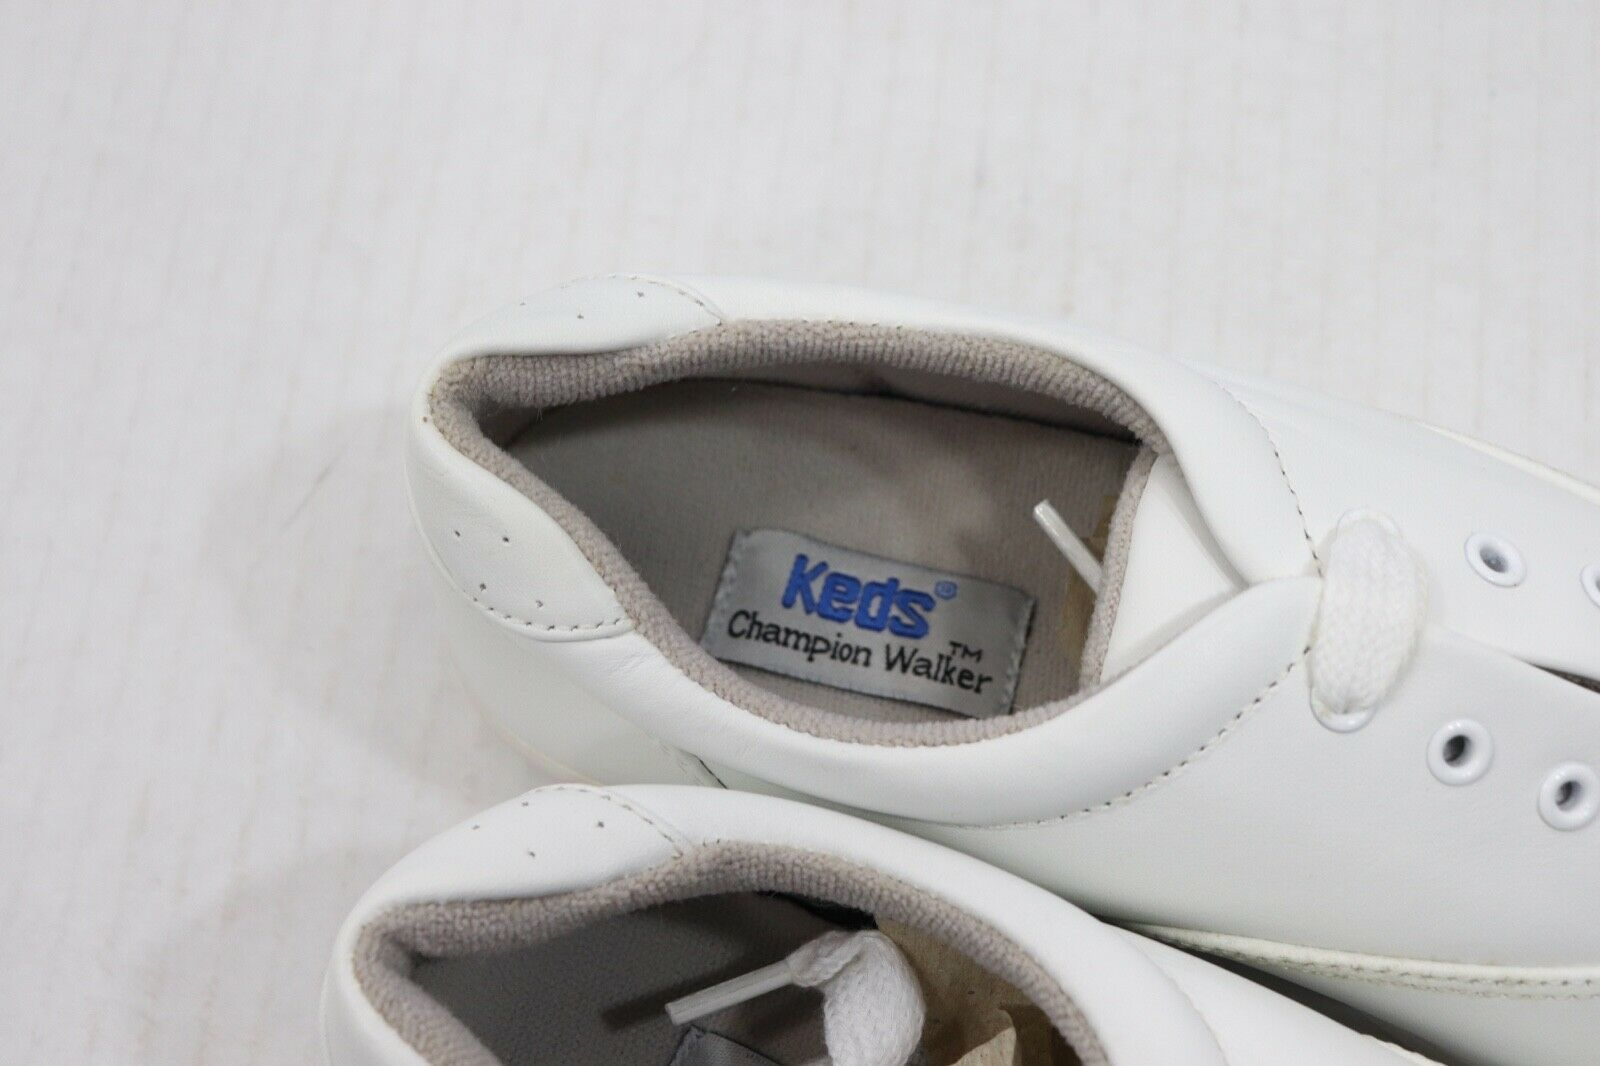 Vintage 90s Keds New Womens 7 M Champion Walker Lace Up Walking Shoes White